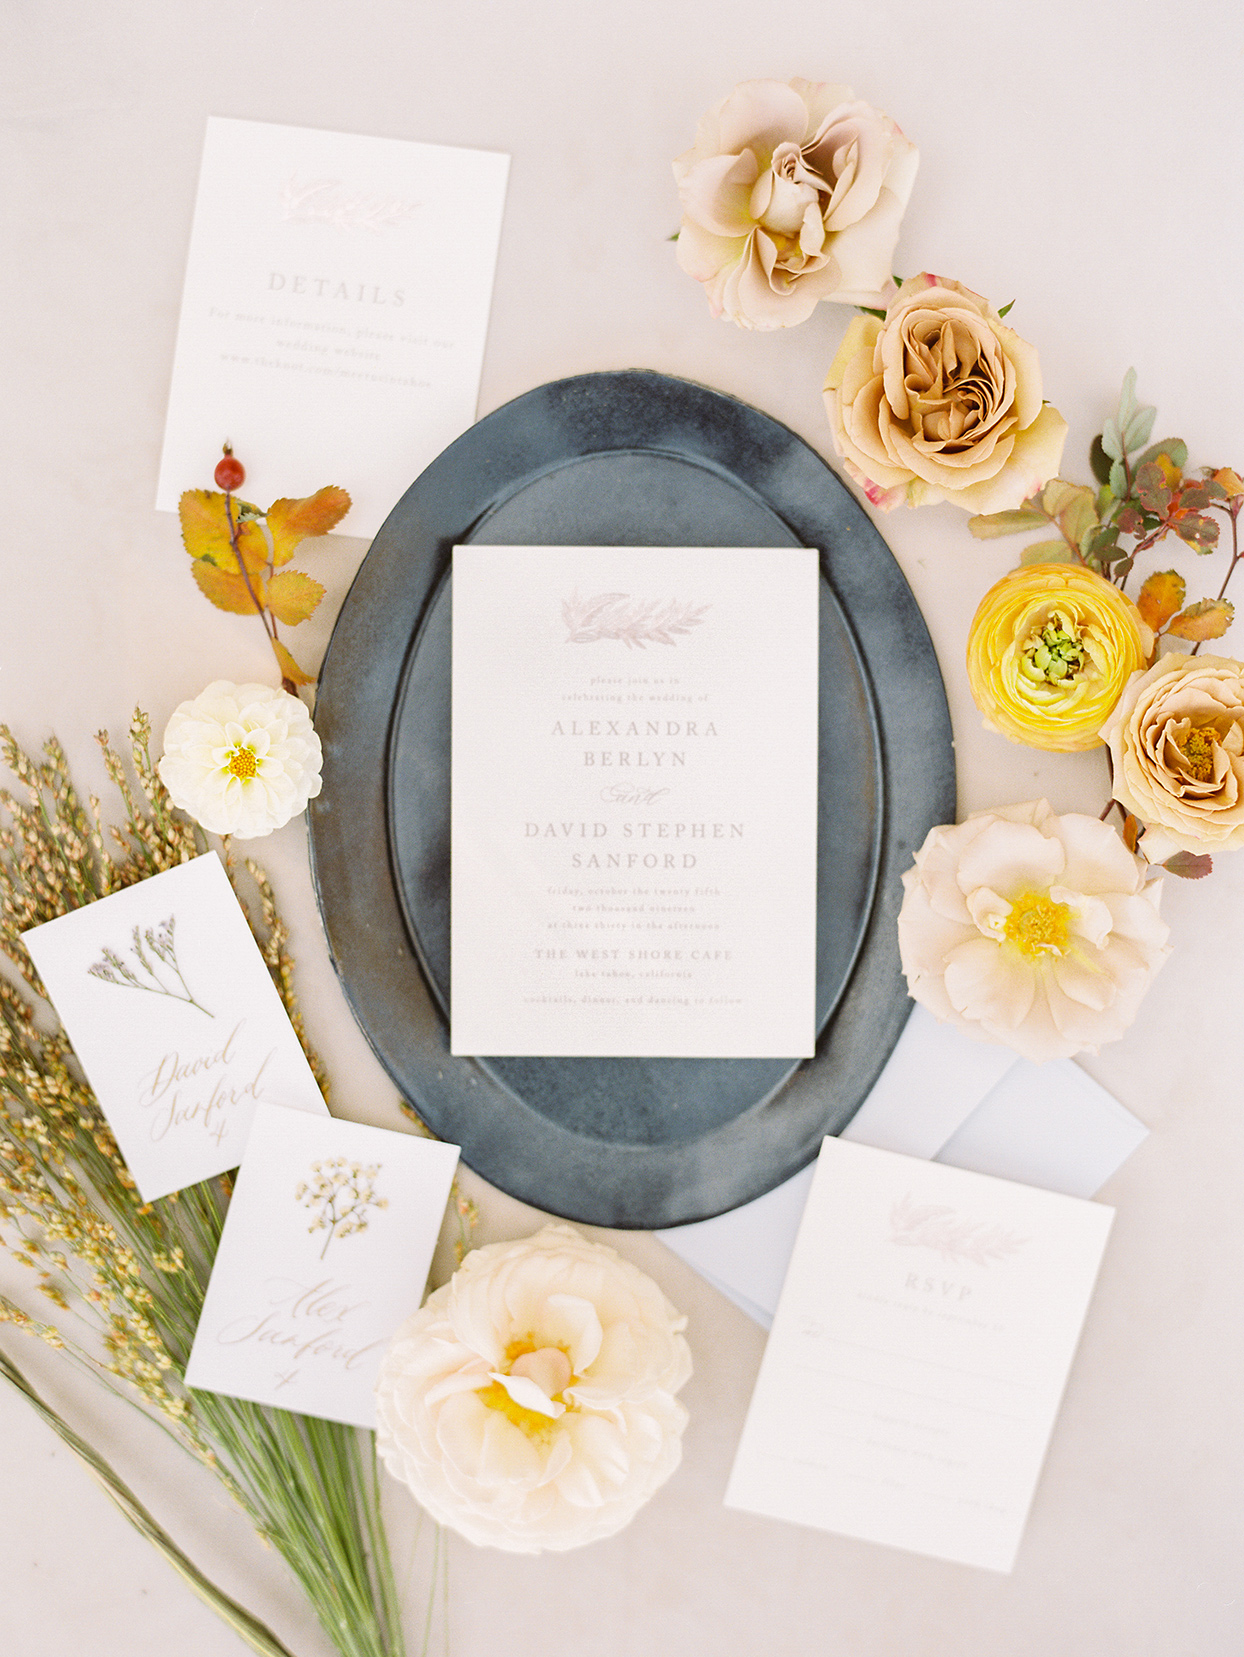 alexandra david wedding invites on gray platter with flowers